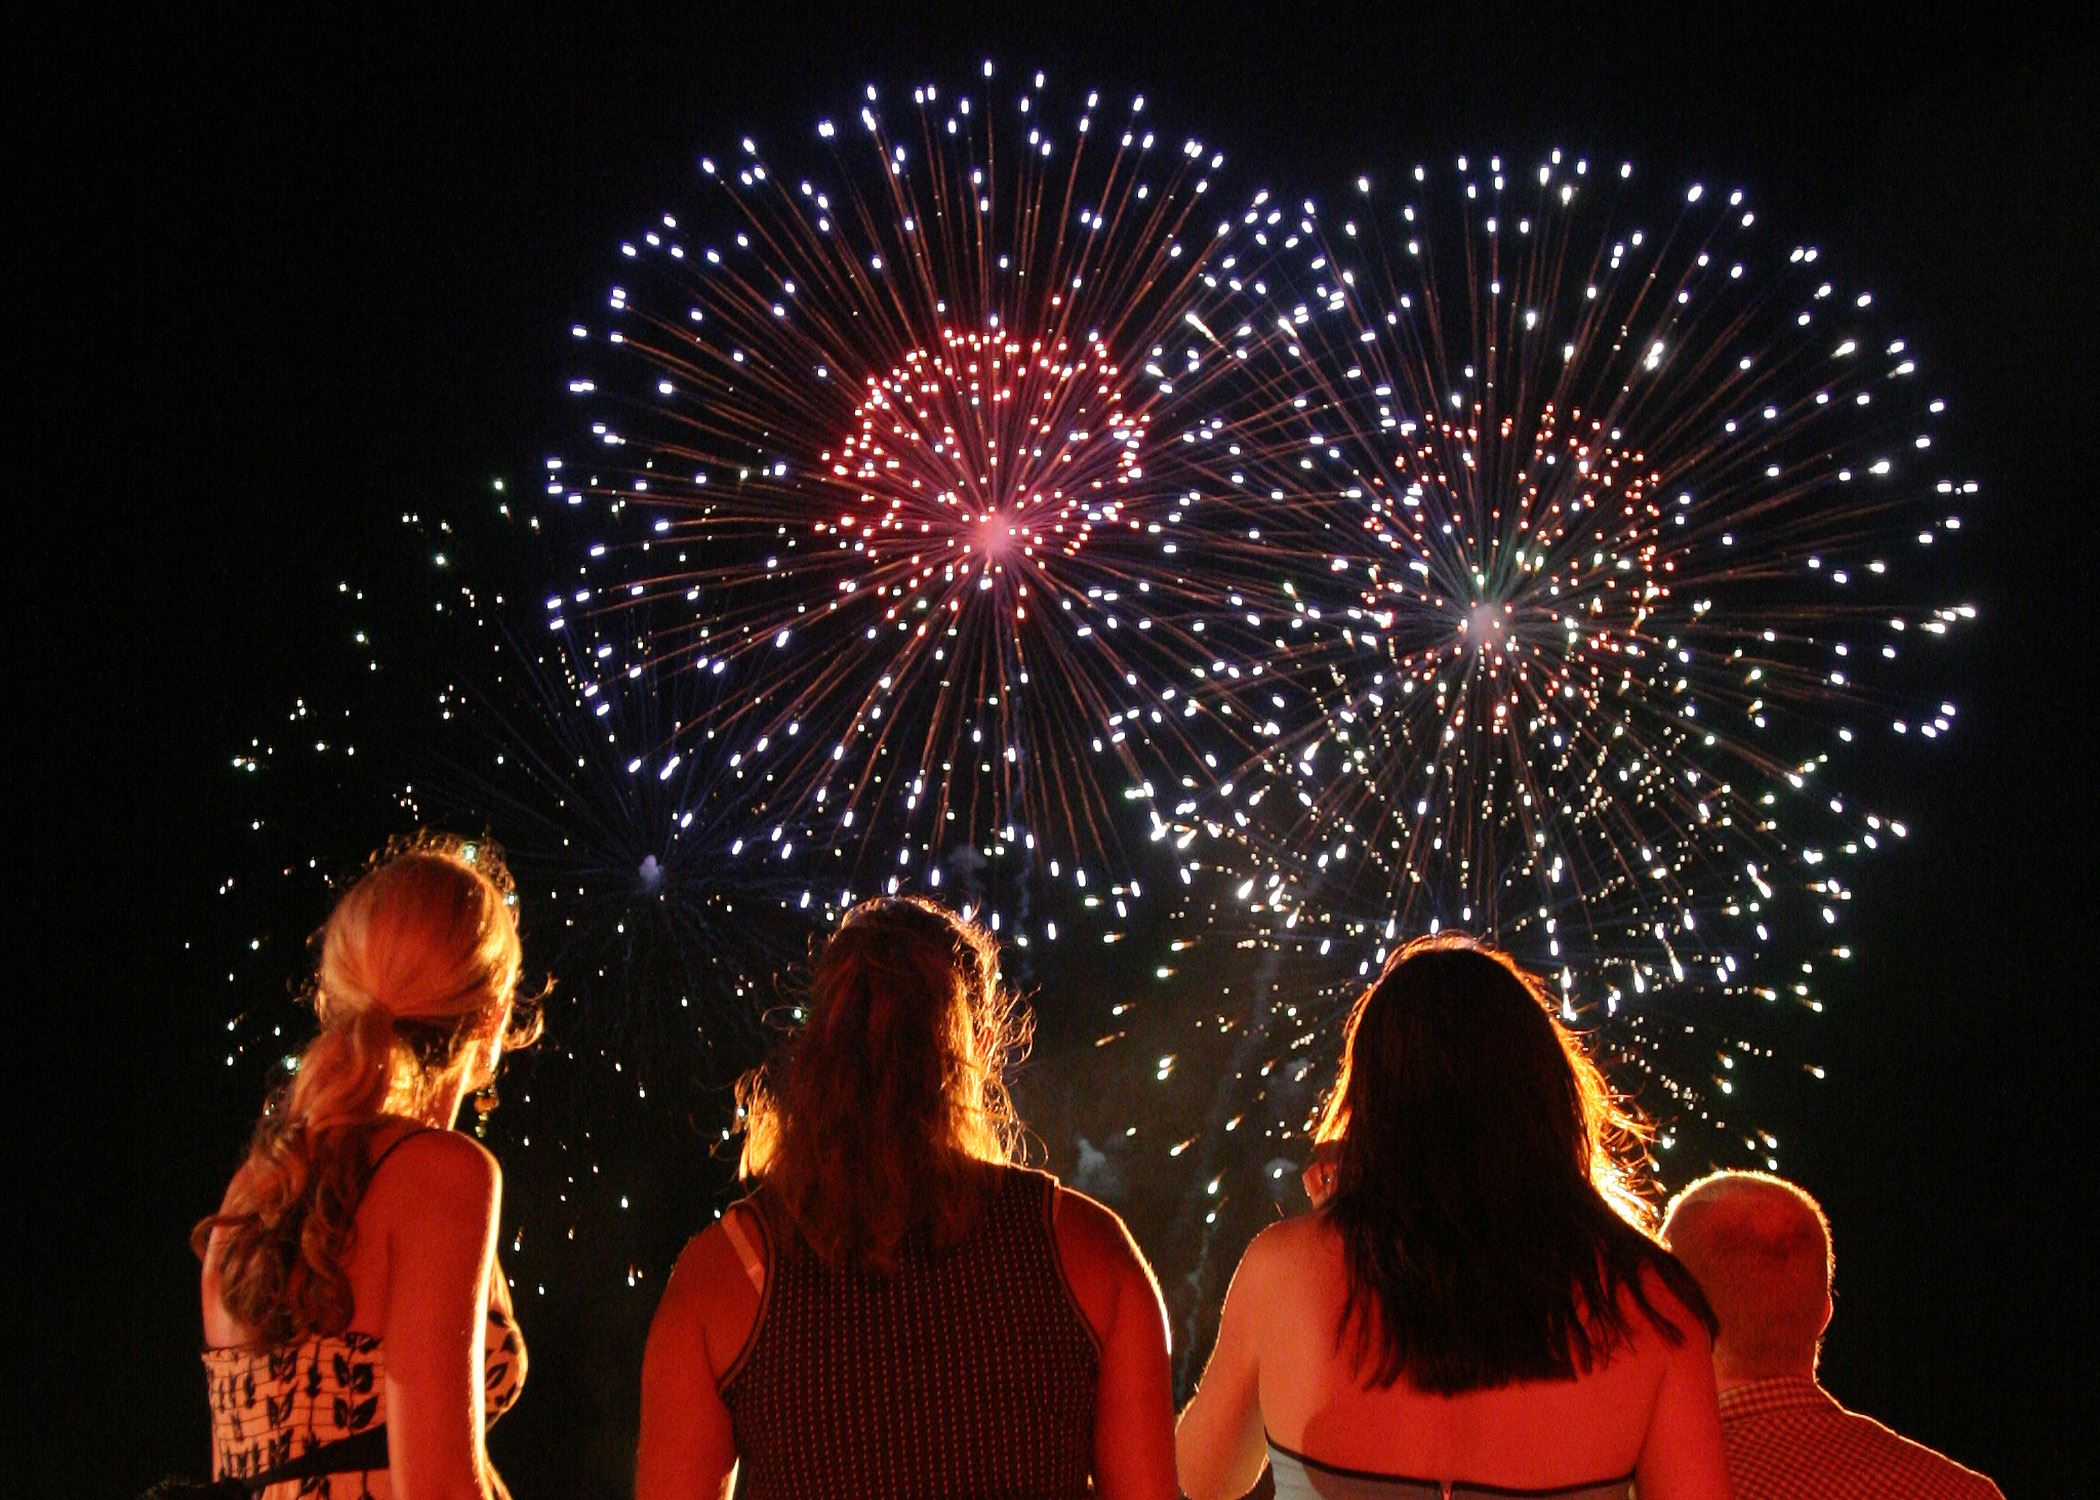 Silhouettes from behind of a group of women looking up at exploding fireworks in the dark sky